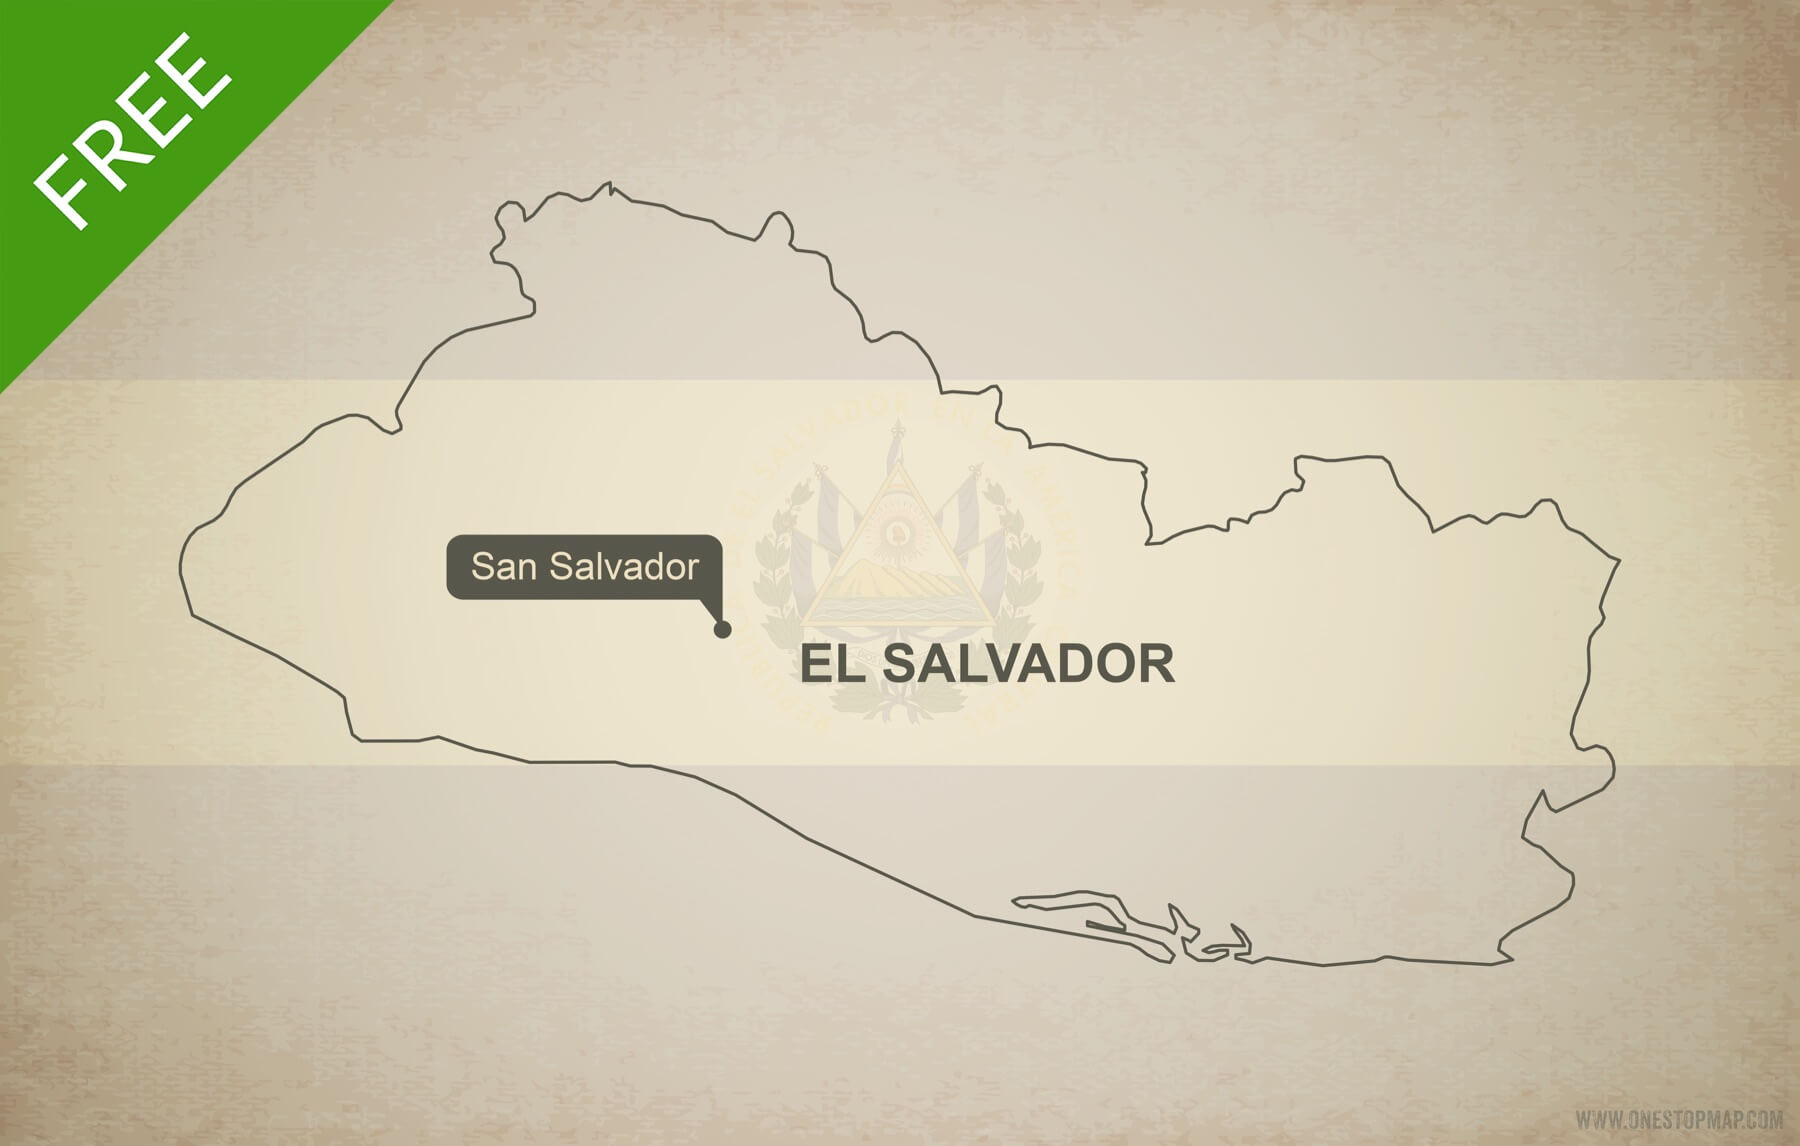 Free vector map of El Salvador outline